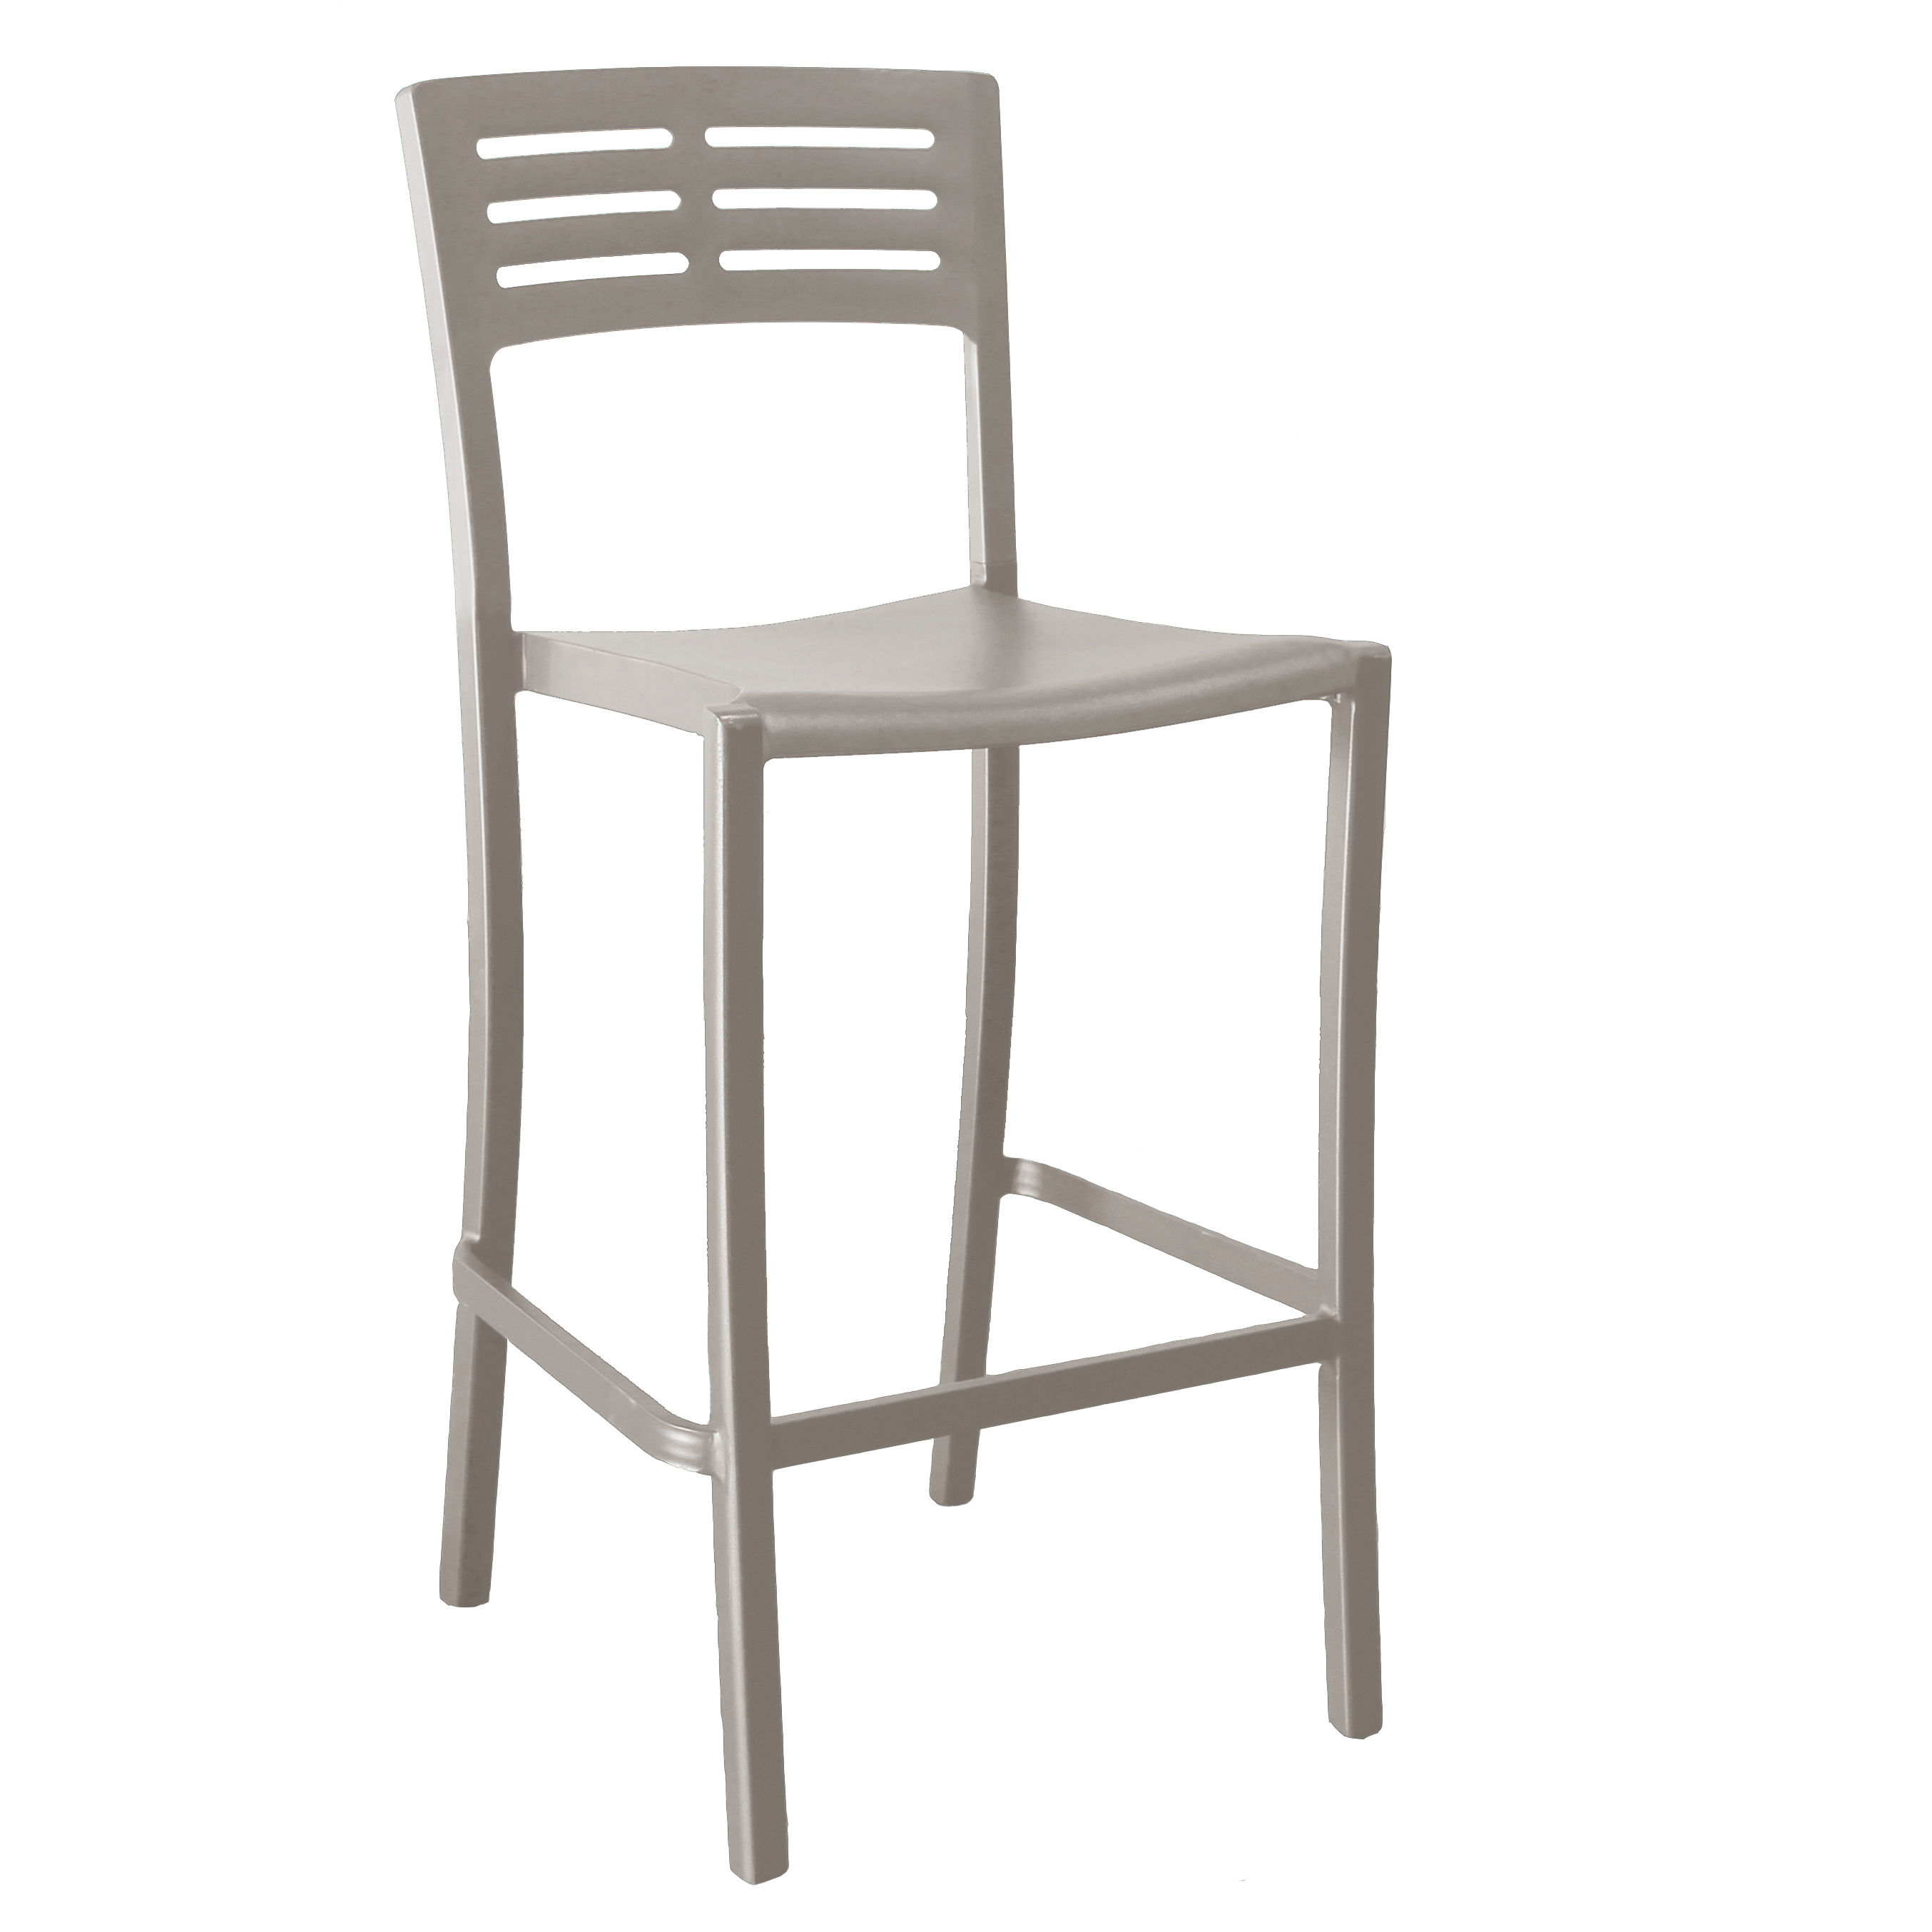 Grosfillex US638181 bar stool, stacking, outdoor